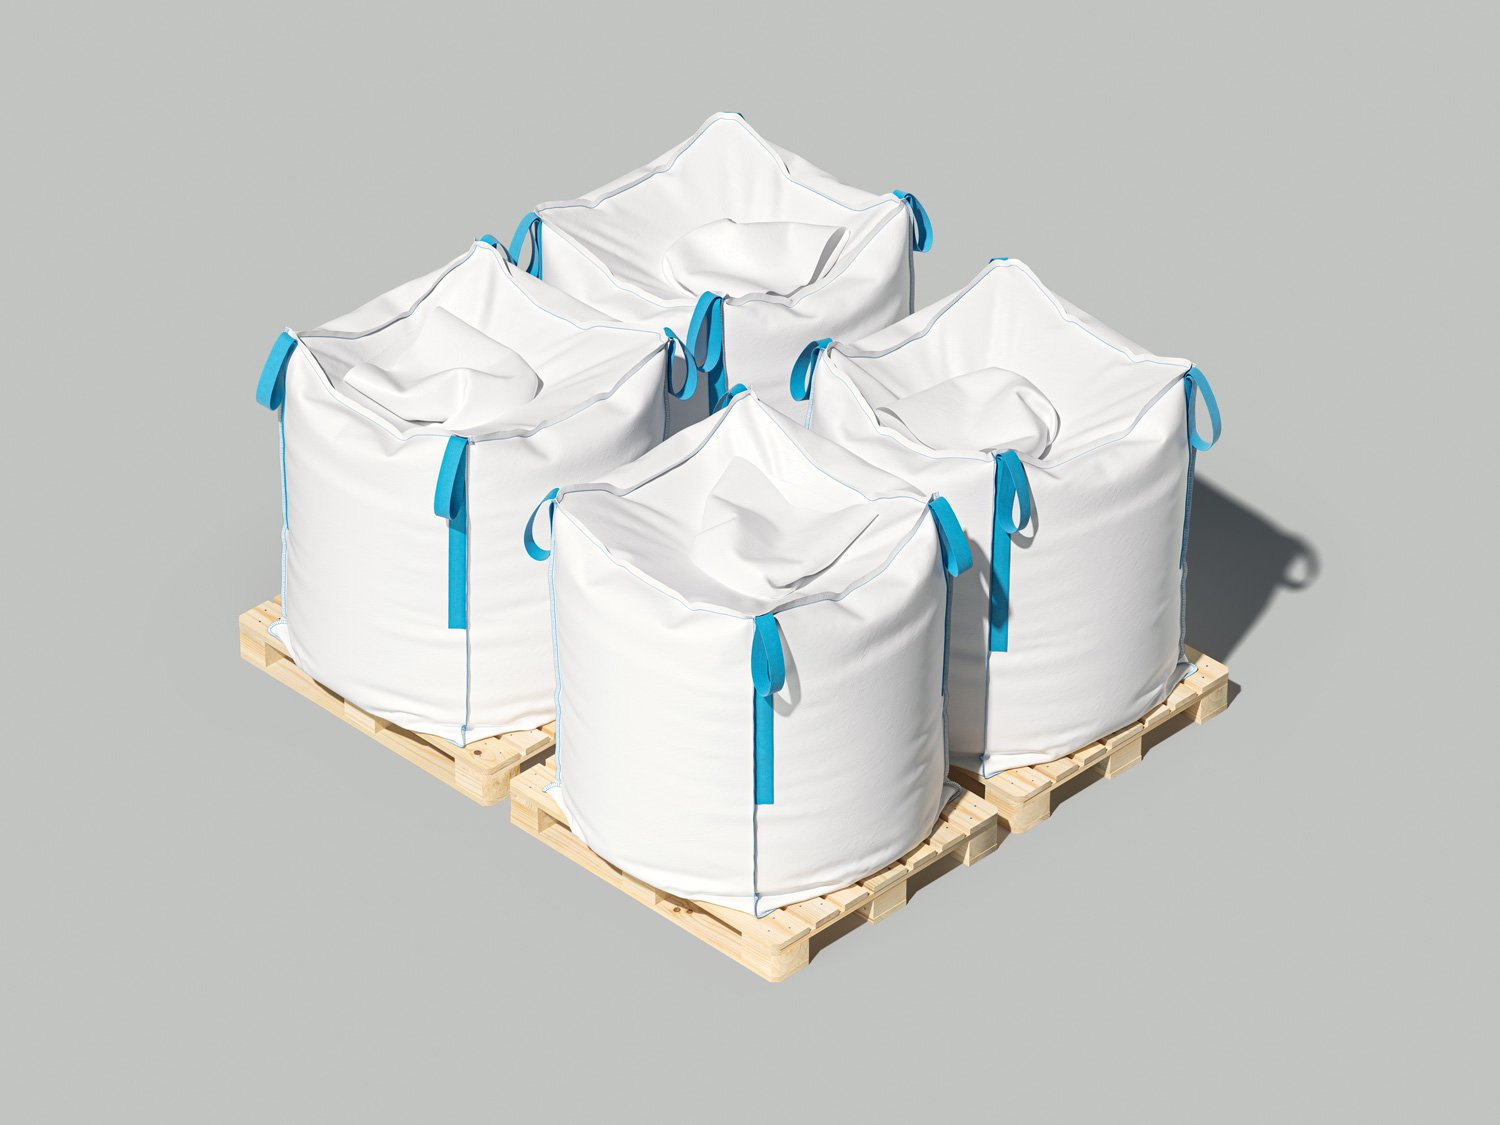 White big bags or sacks on pallet. Isolated objects on light background. Mockup for design. 3d render